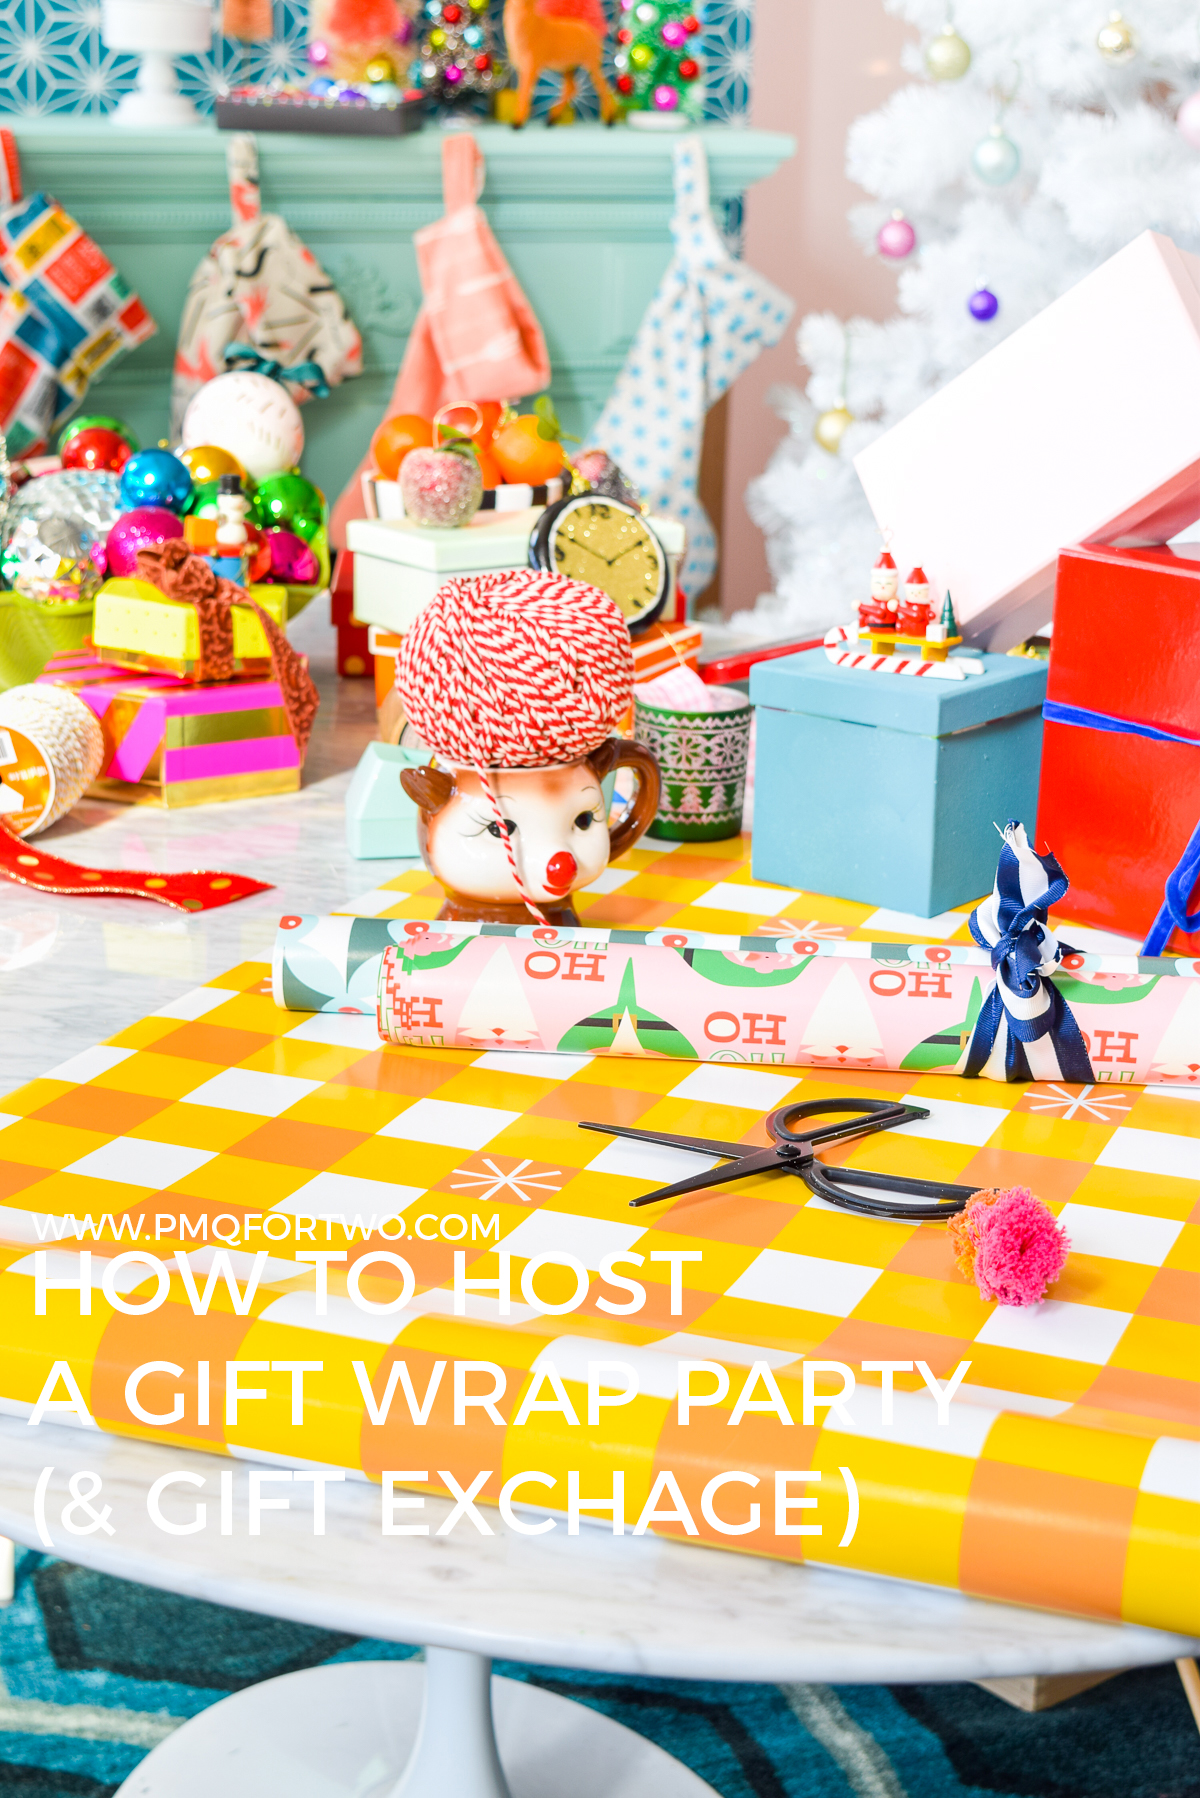 How to Throw a Gift Wrap Party (with a Gift Exchange!) • PMQ for two